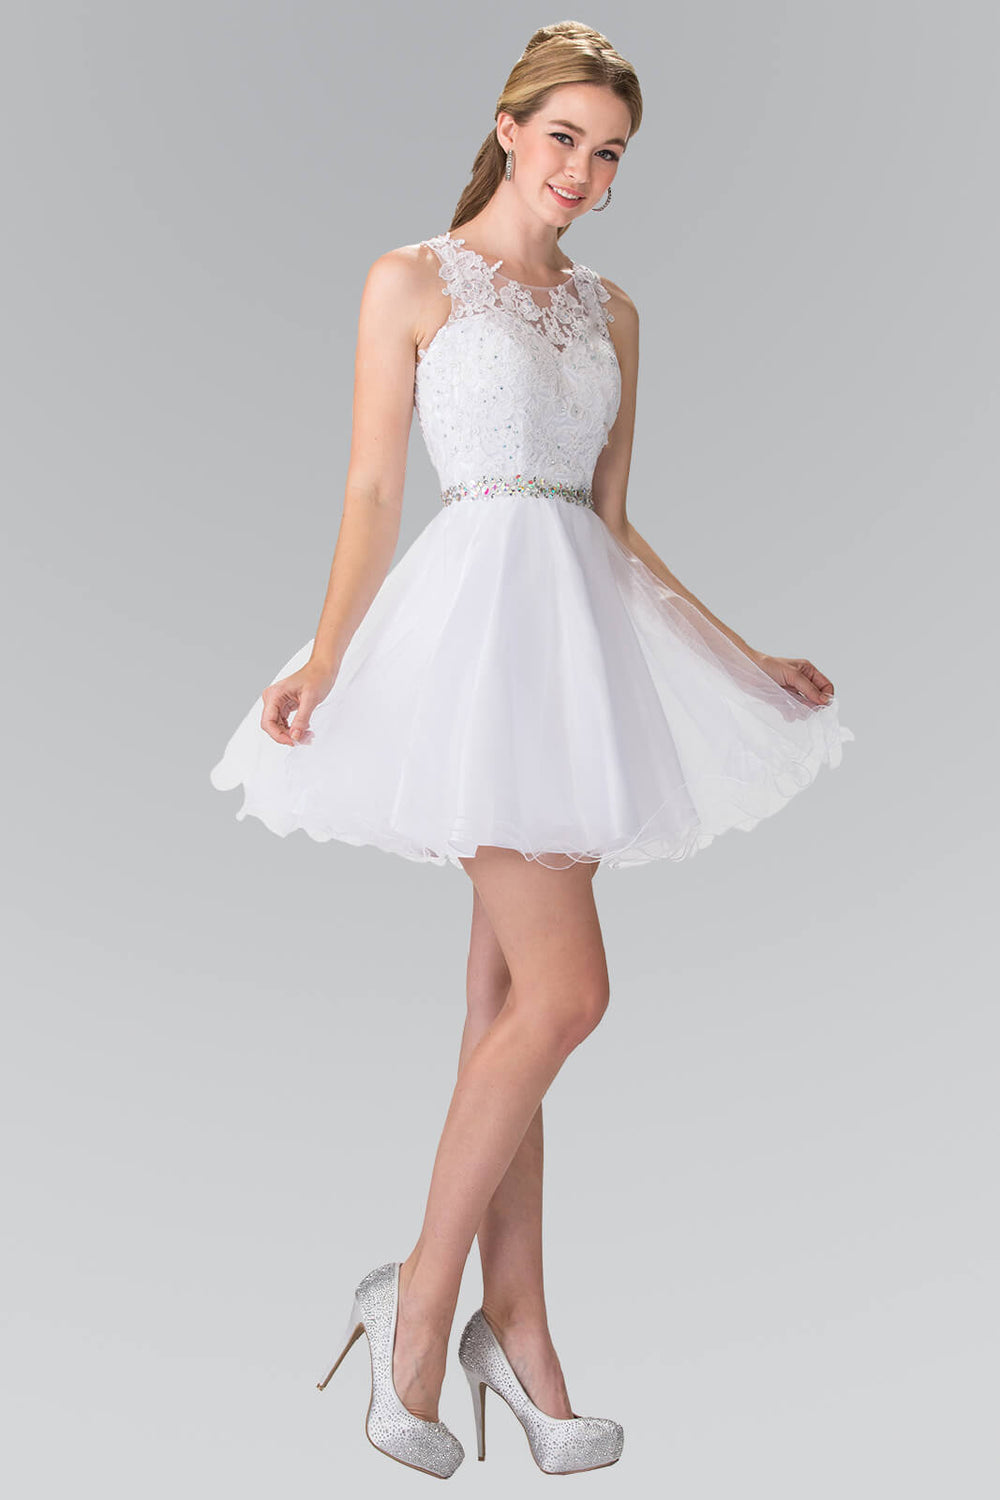 Sleeveless Prom Short Dress Homecoming - The Dress Outlet Snow White